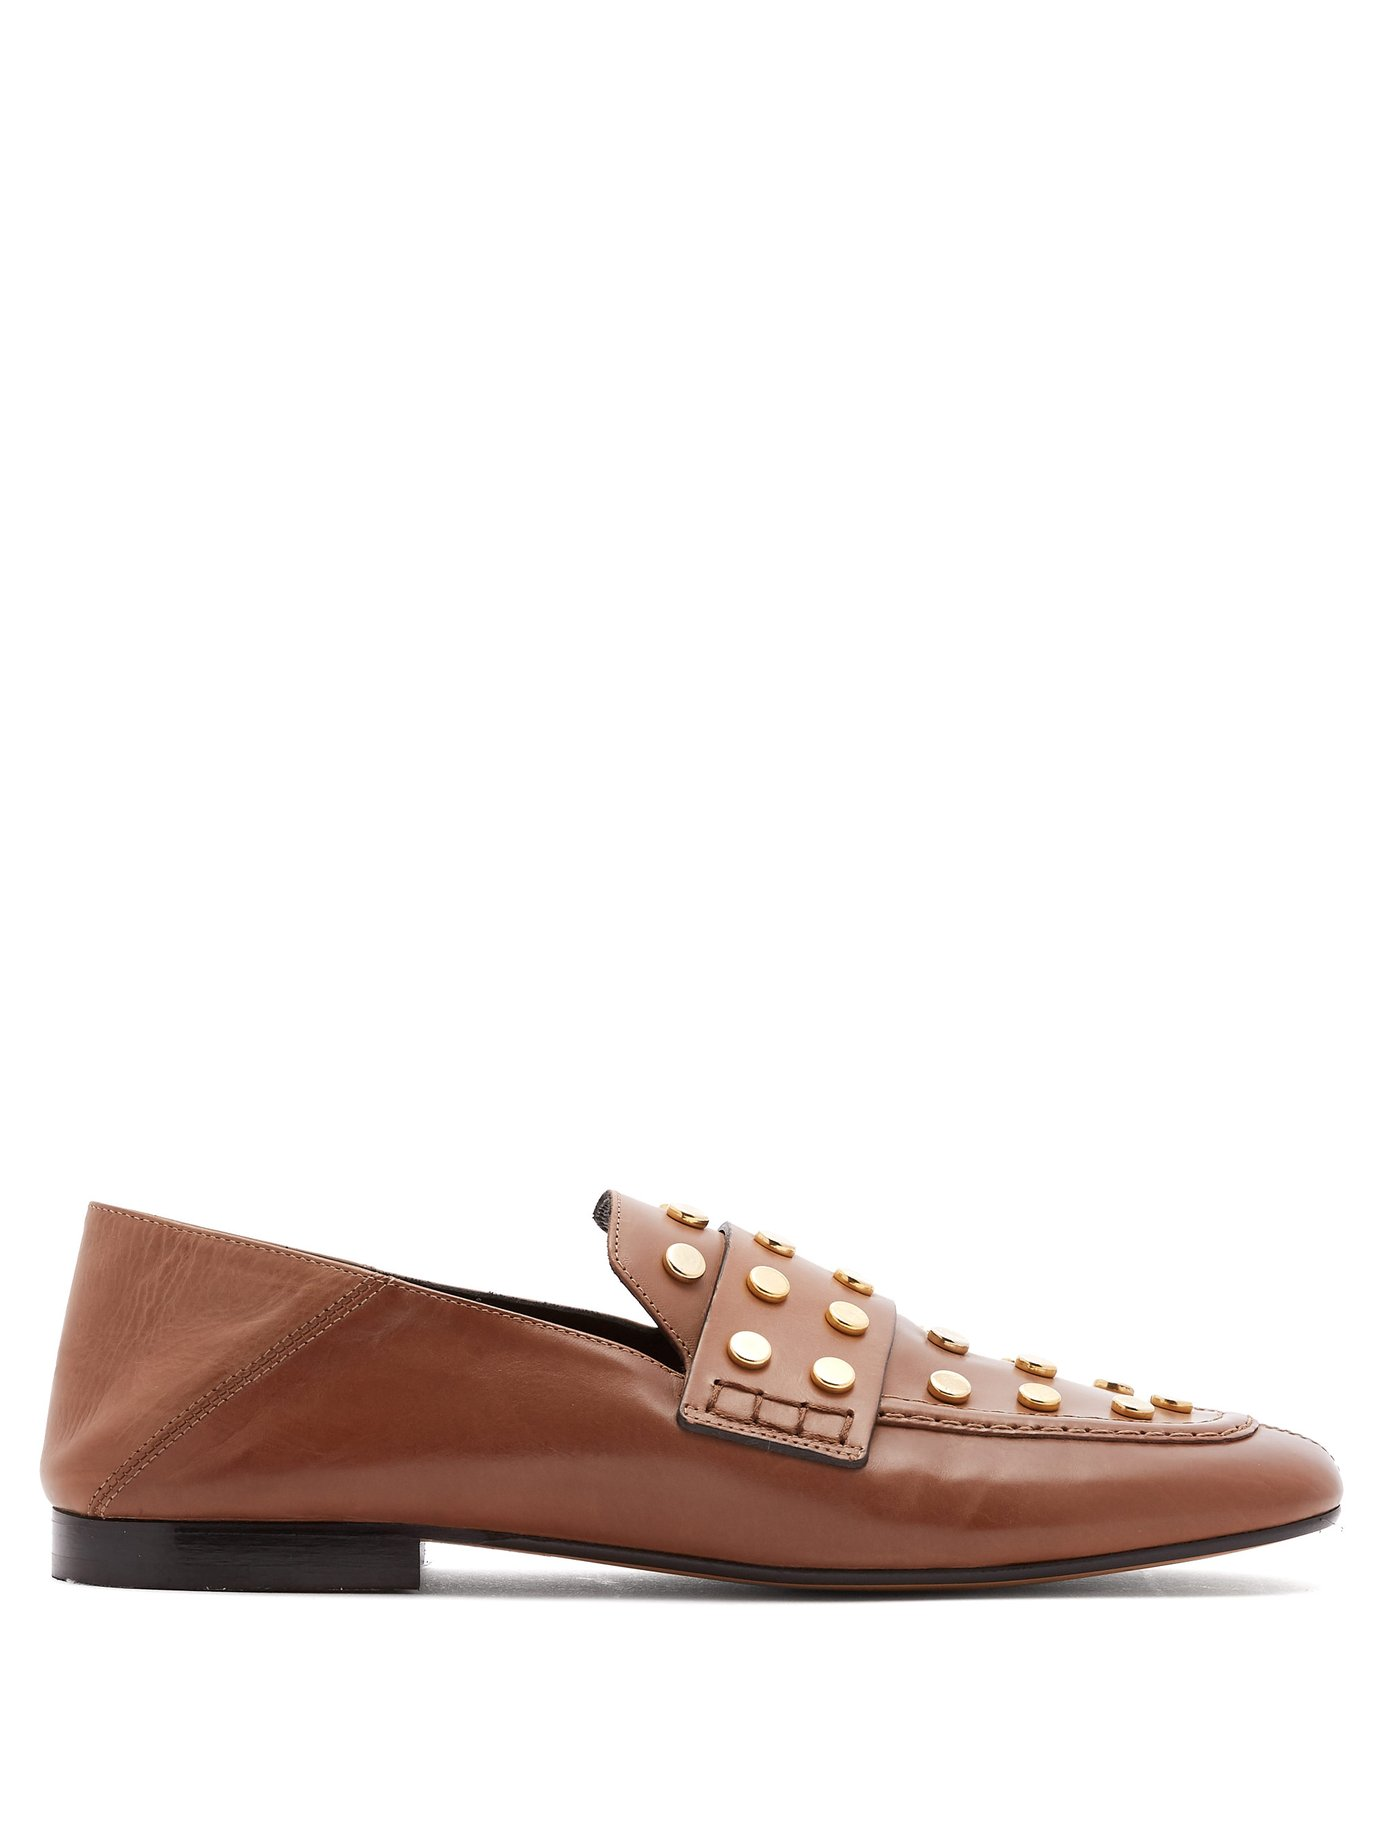 a36a6b47229 Home   Filter By   Event   Work   Isabel Marant Feenie collapsible-heel  leather loafers